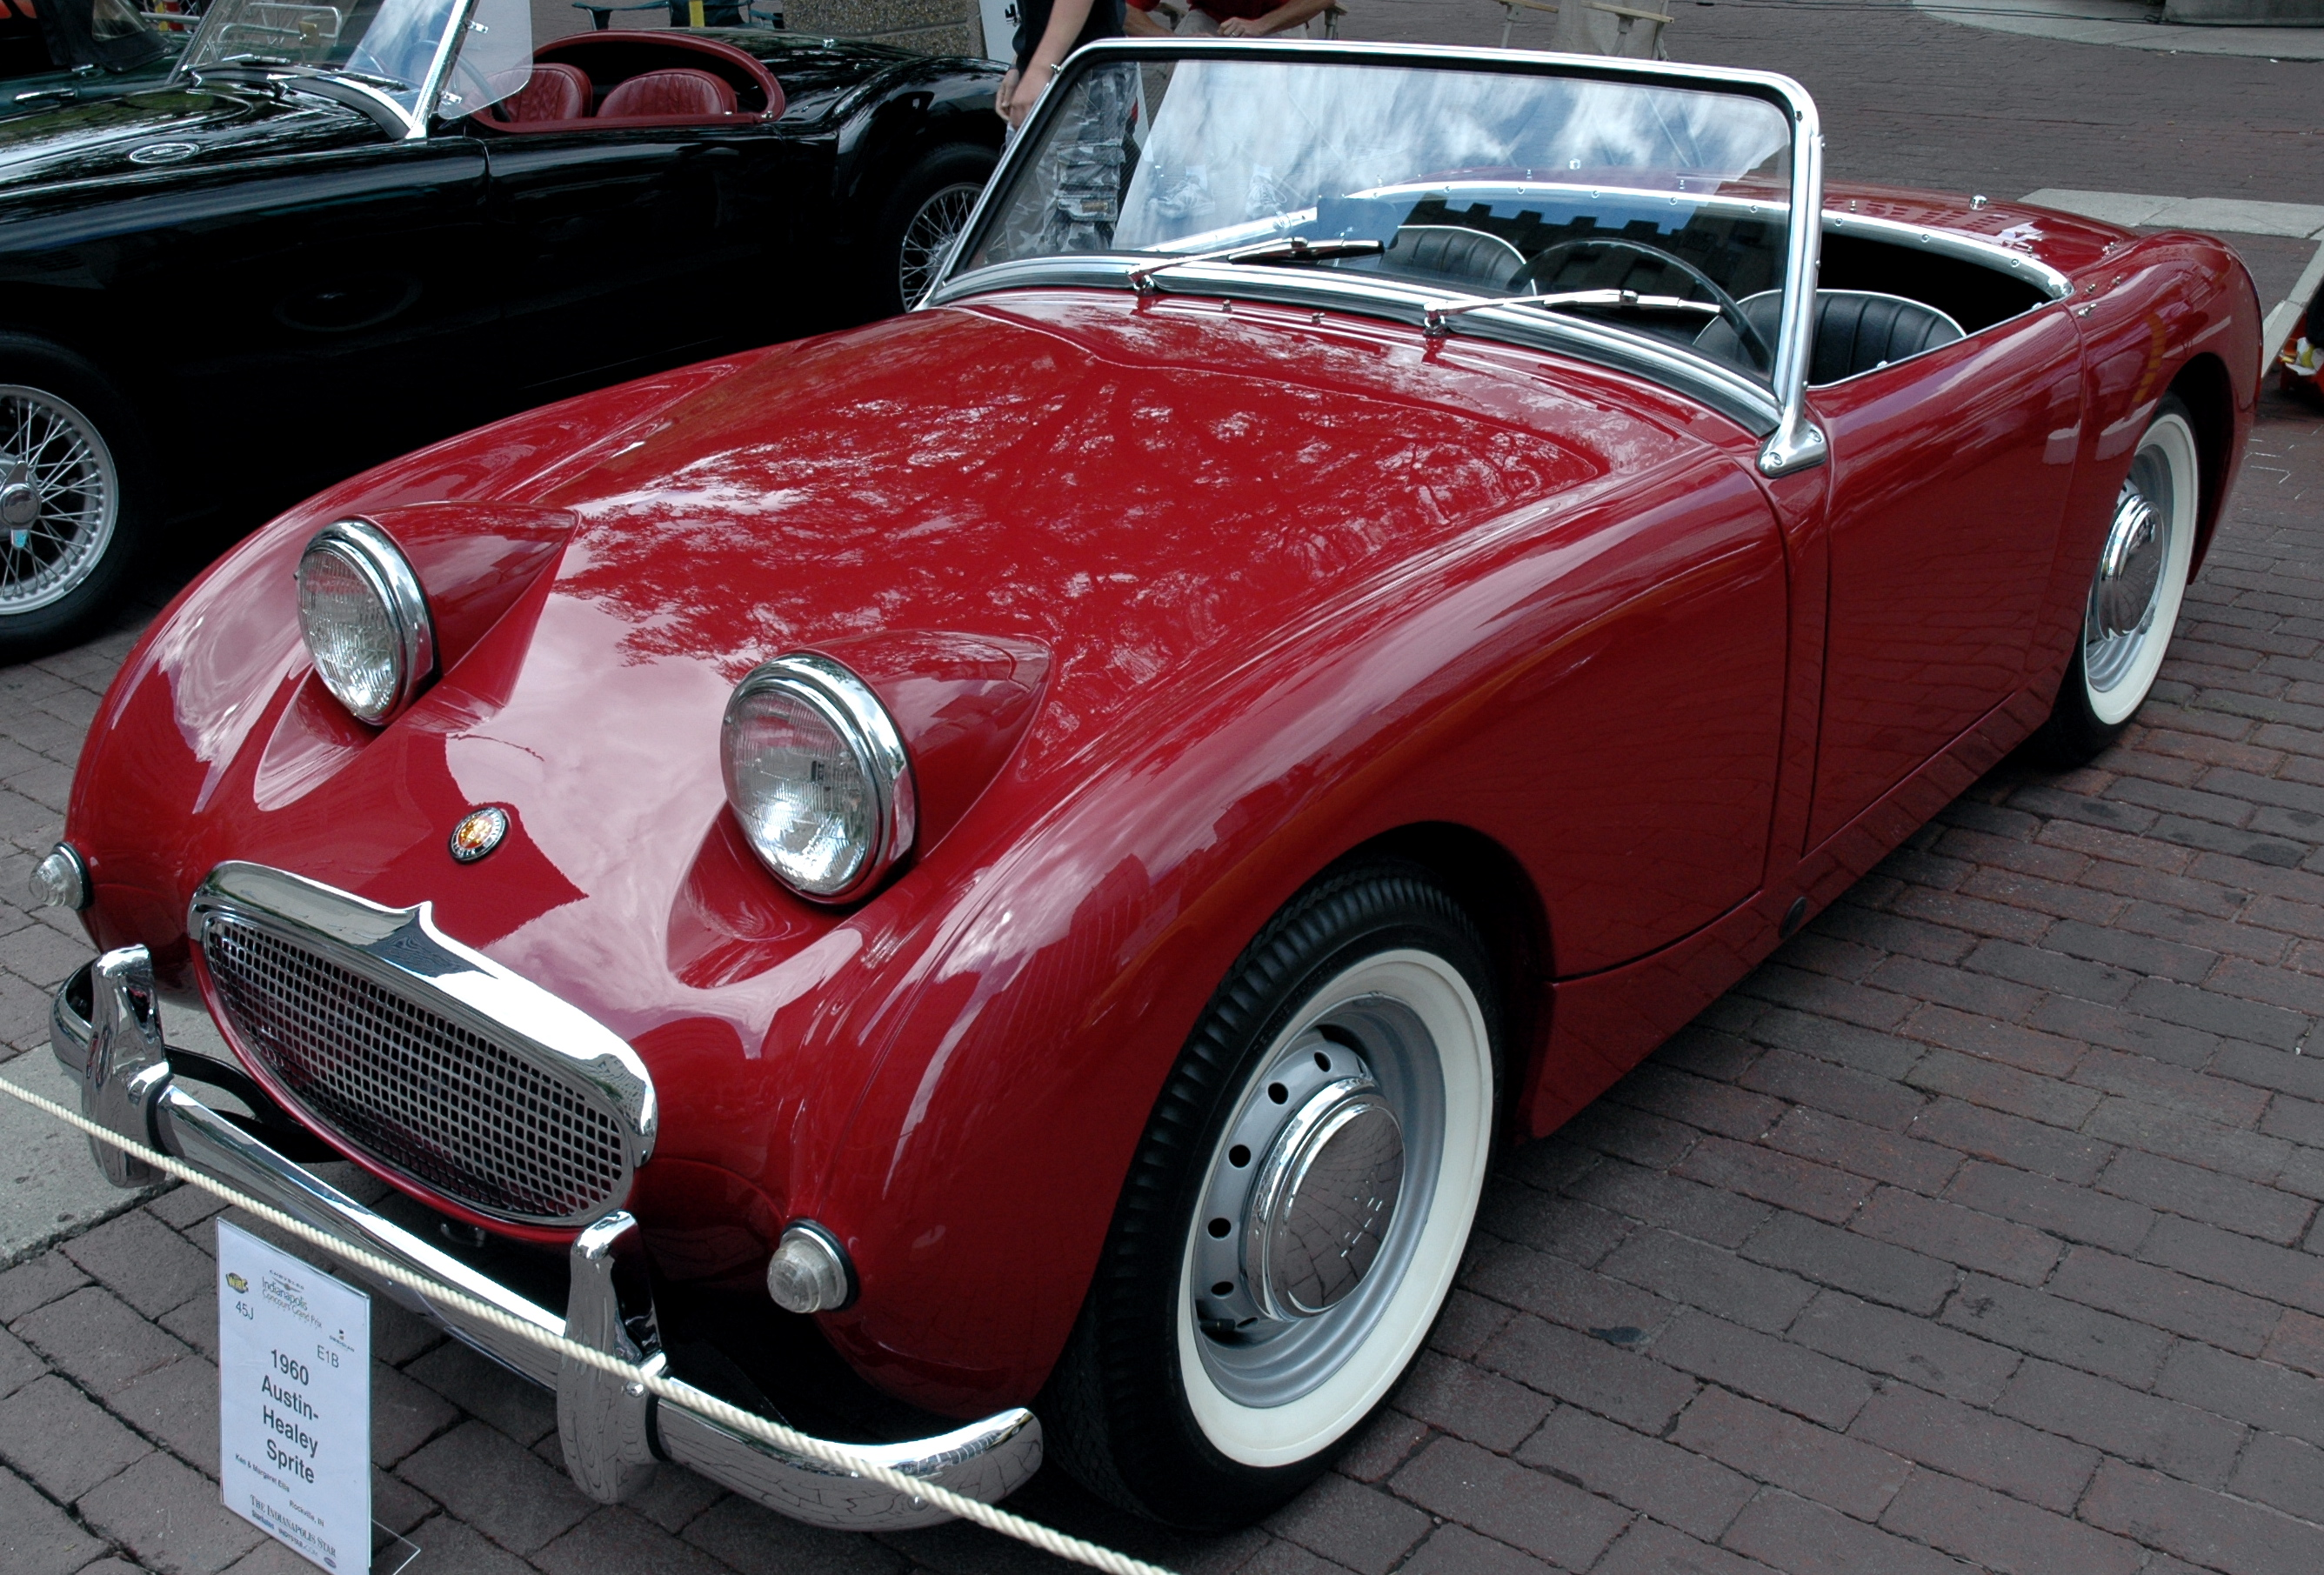 Austin Healey  Classic Cars. Scholarships For Christian Colleges. Greek Yogurt Weight Loss Tools For Recruiters. Unique Towing Santa Clara Online Dvd Storage. How Much Of A Mortgage Can I Get Approved For. Philadelphia License And Inspections. Nausea And Headache Treatment. How To Trade In Currency Moving Company Miami. Law School Application Checklist